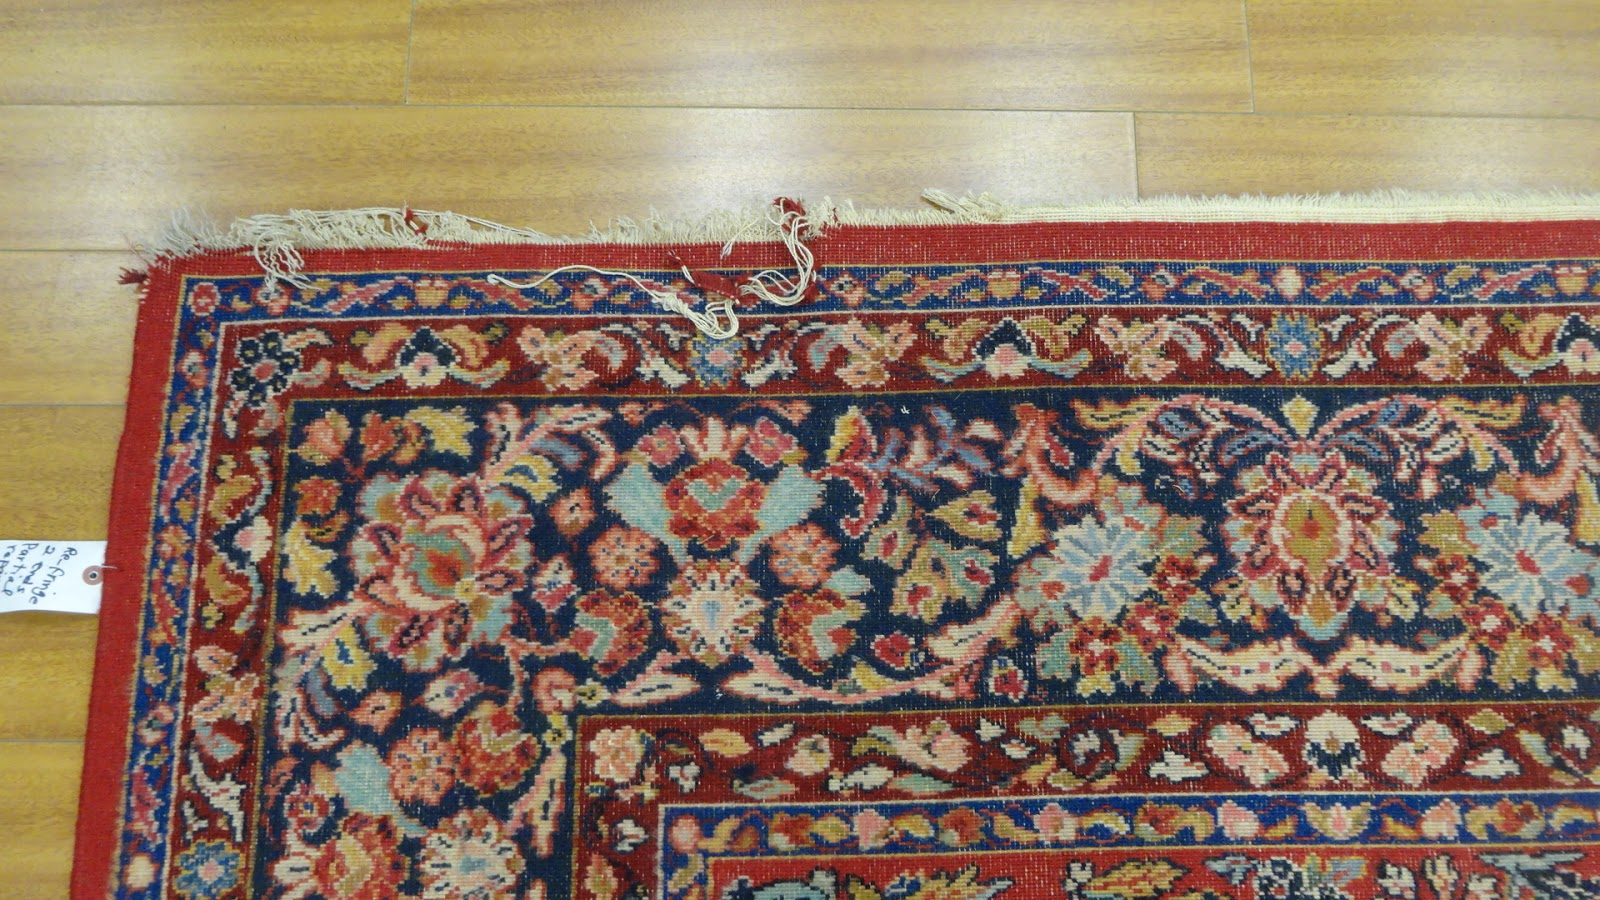 "A while ago, we received a Karastan rug of 8' 8"" x 12'. This rug was water  damaged and then left without being taken care off in storage for a long  time."